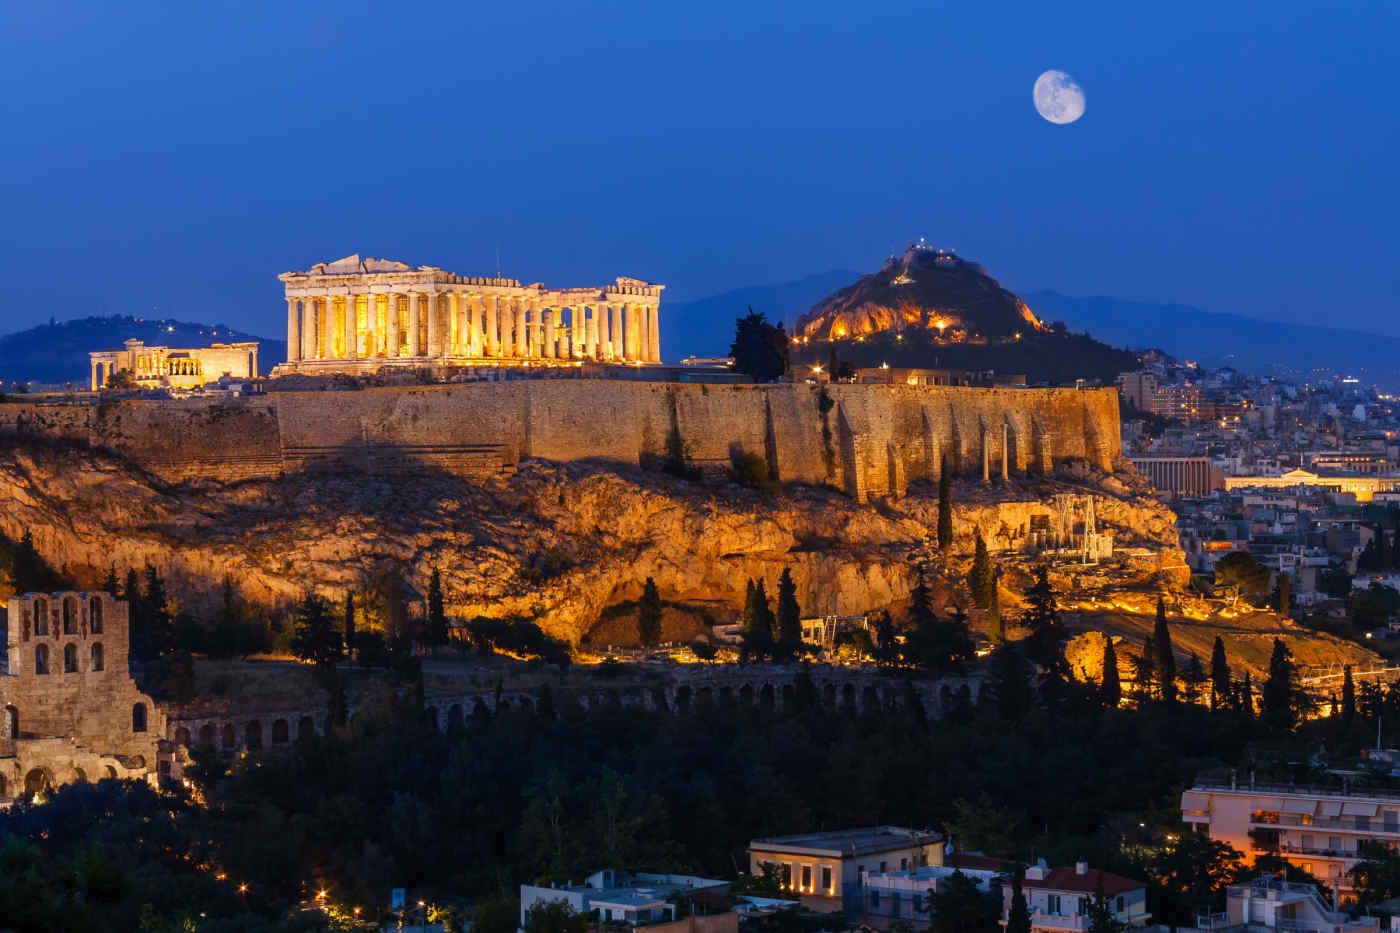 Parthenon at night in Athens, Greece